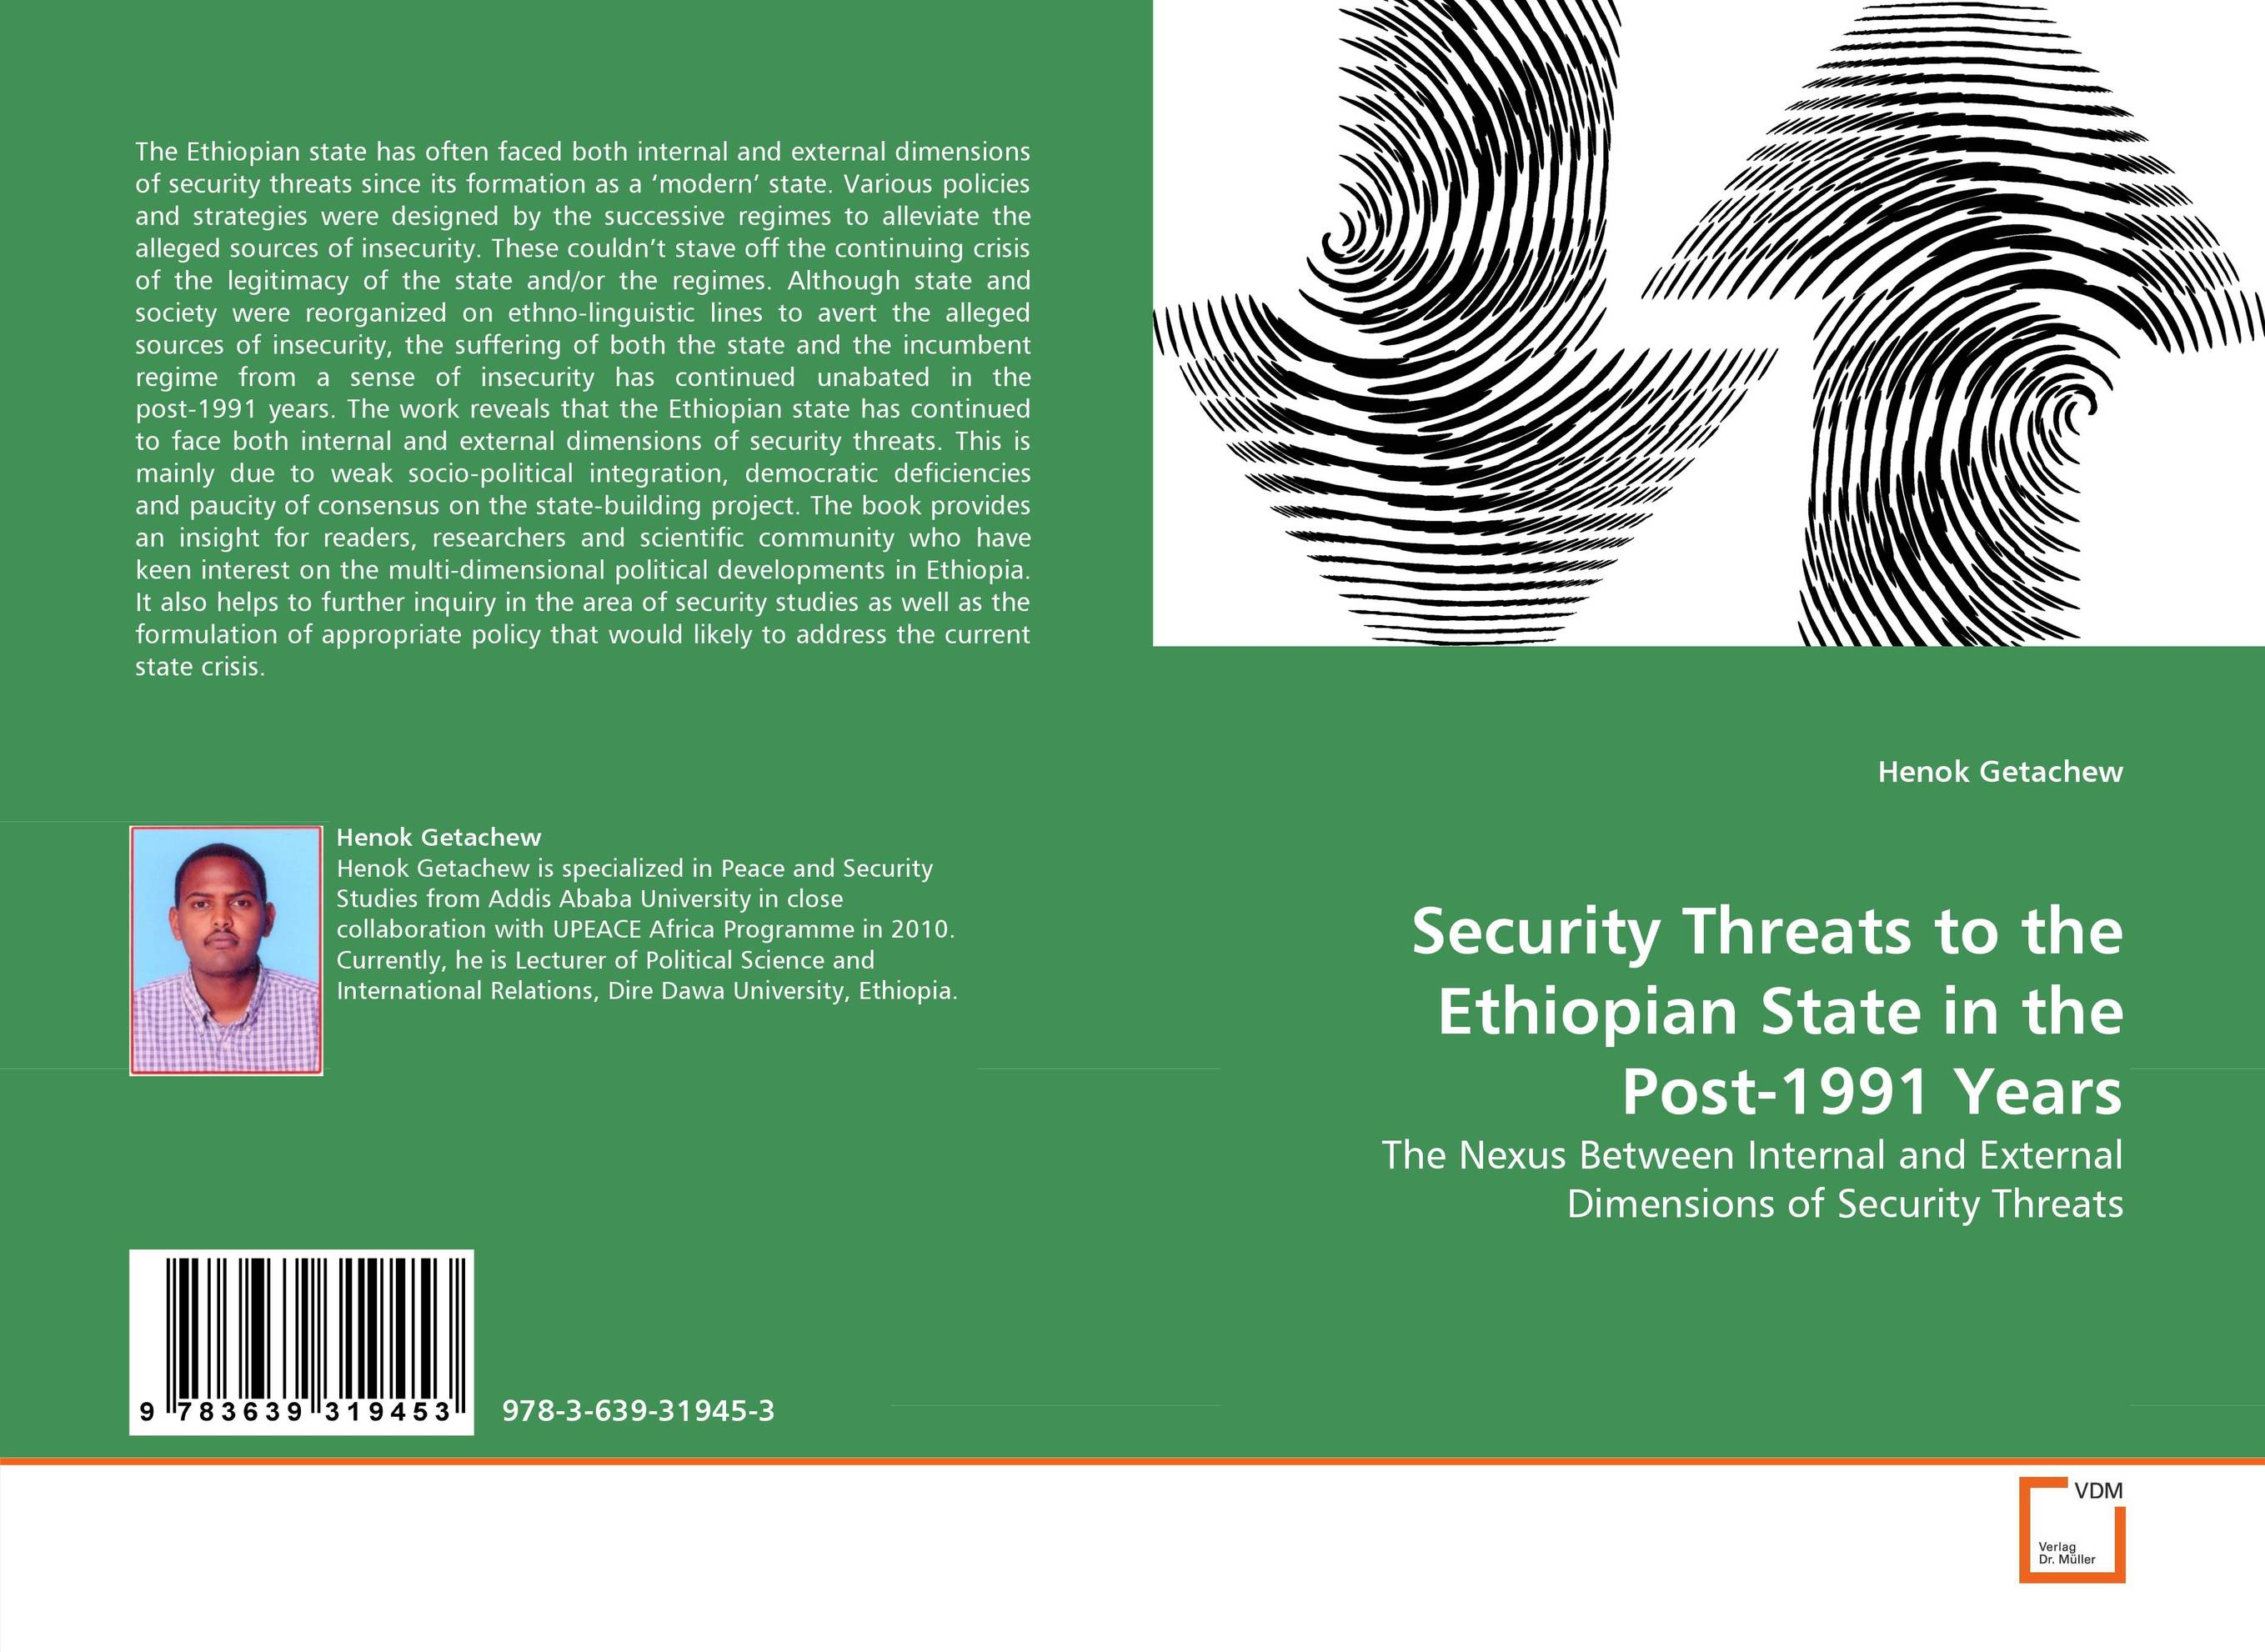 Security Threats to the Ethiopian State in the Post-1991 Years immunity of heads of state